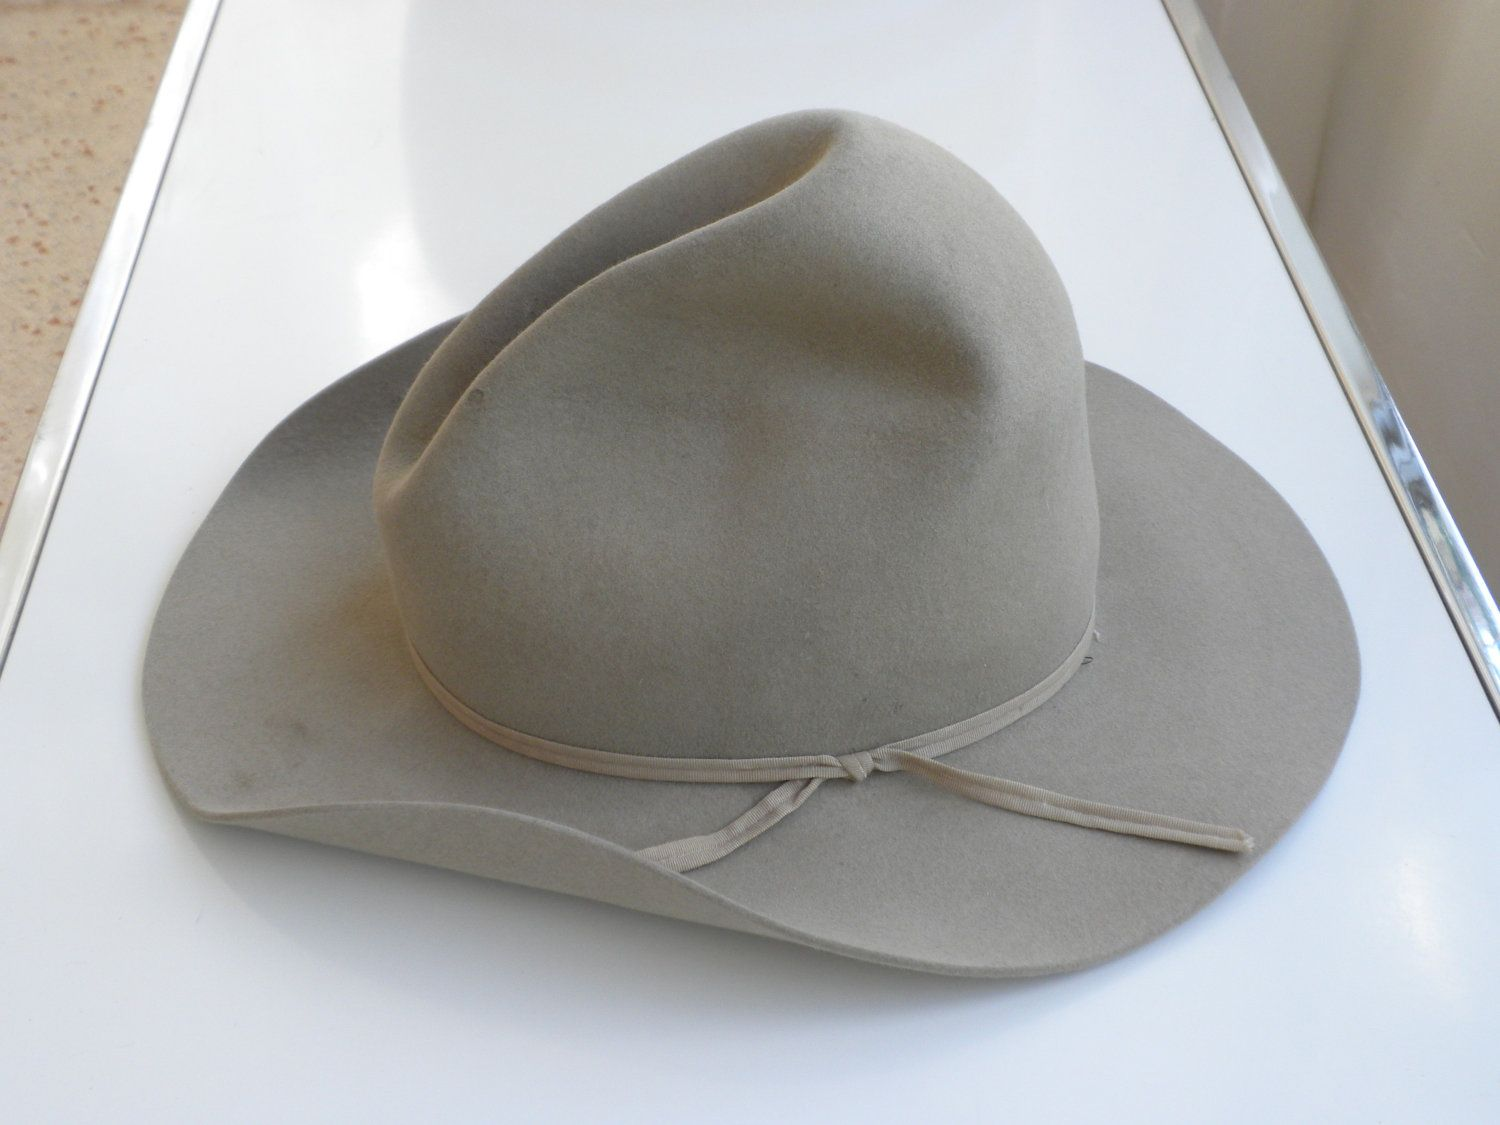 7244ab20ccdca This is a genuine Western hat in the Tom Mix Style. Made by the Resistol